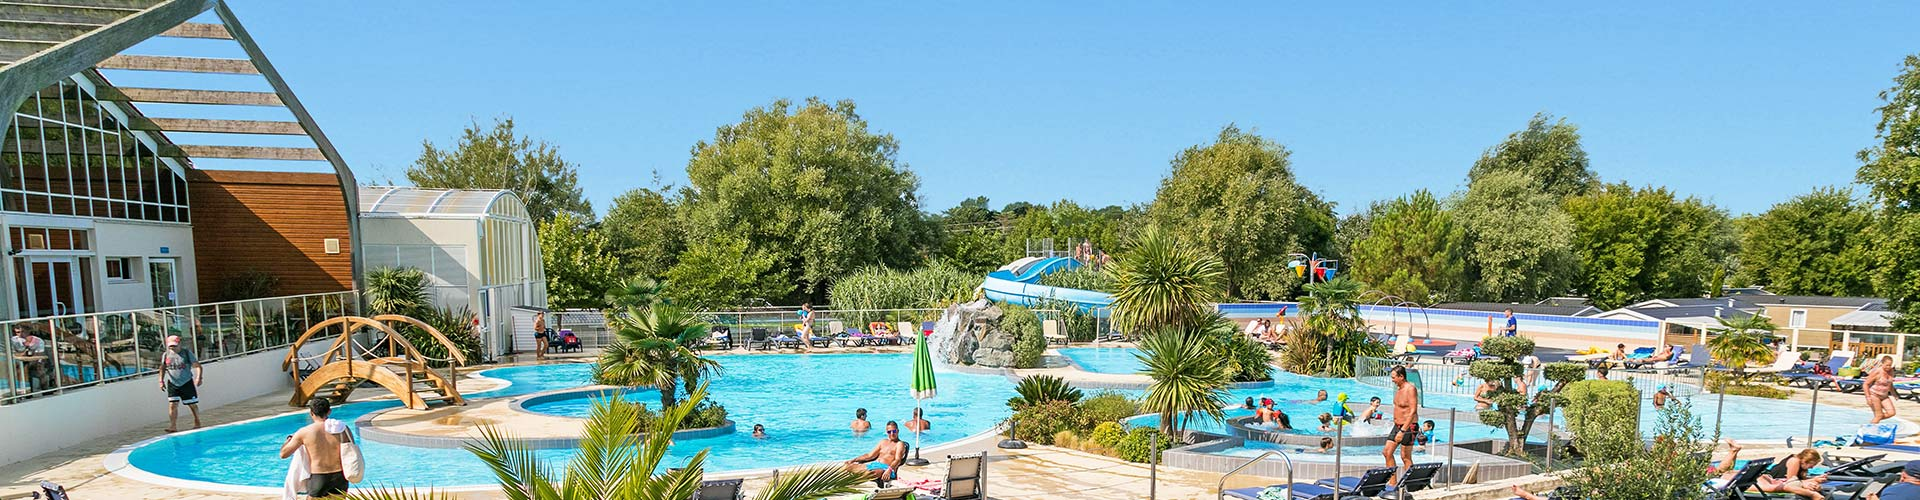 Camping 5 toiles ile d 39 ol ron camping saint georges d - Camping piscine la rochelle ...